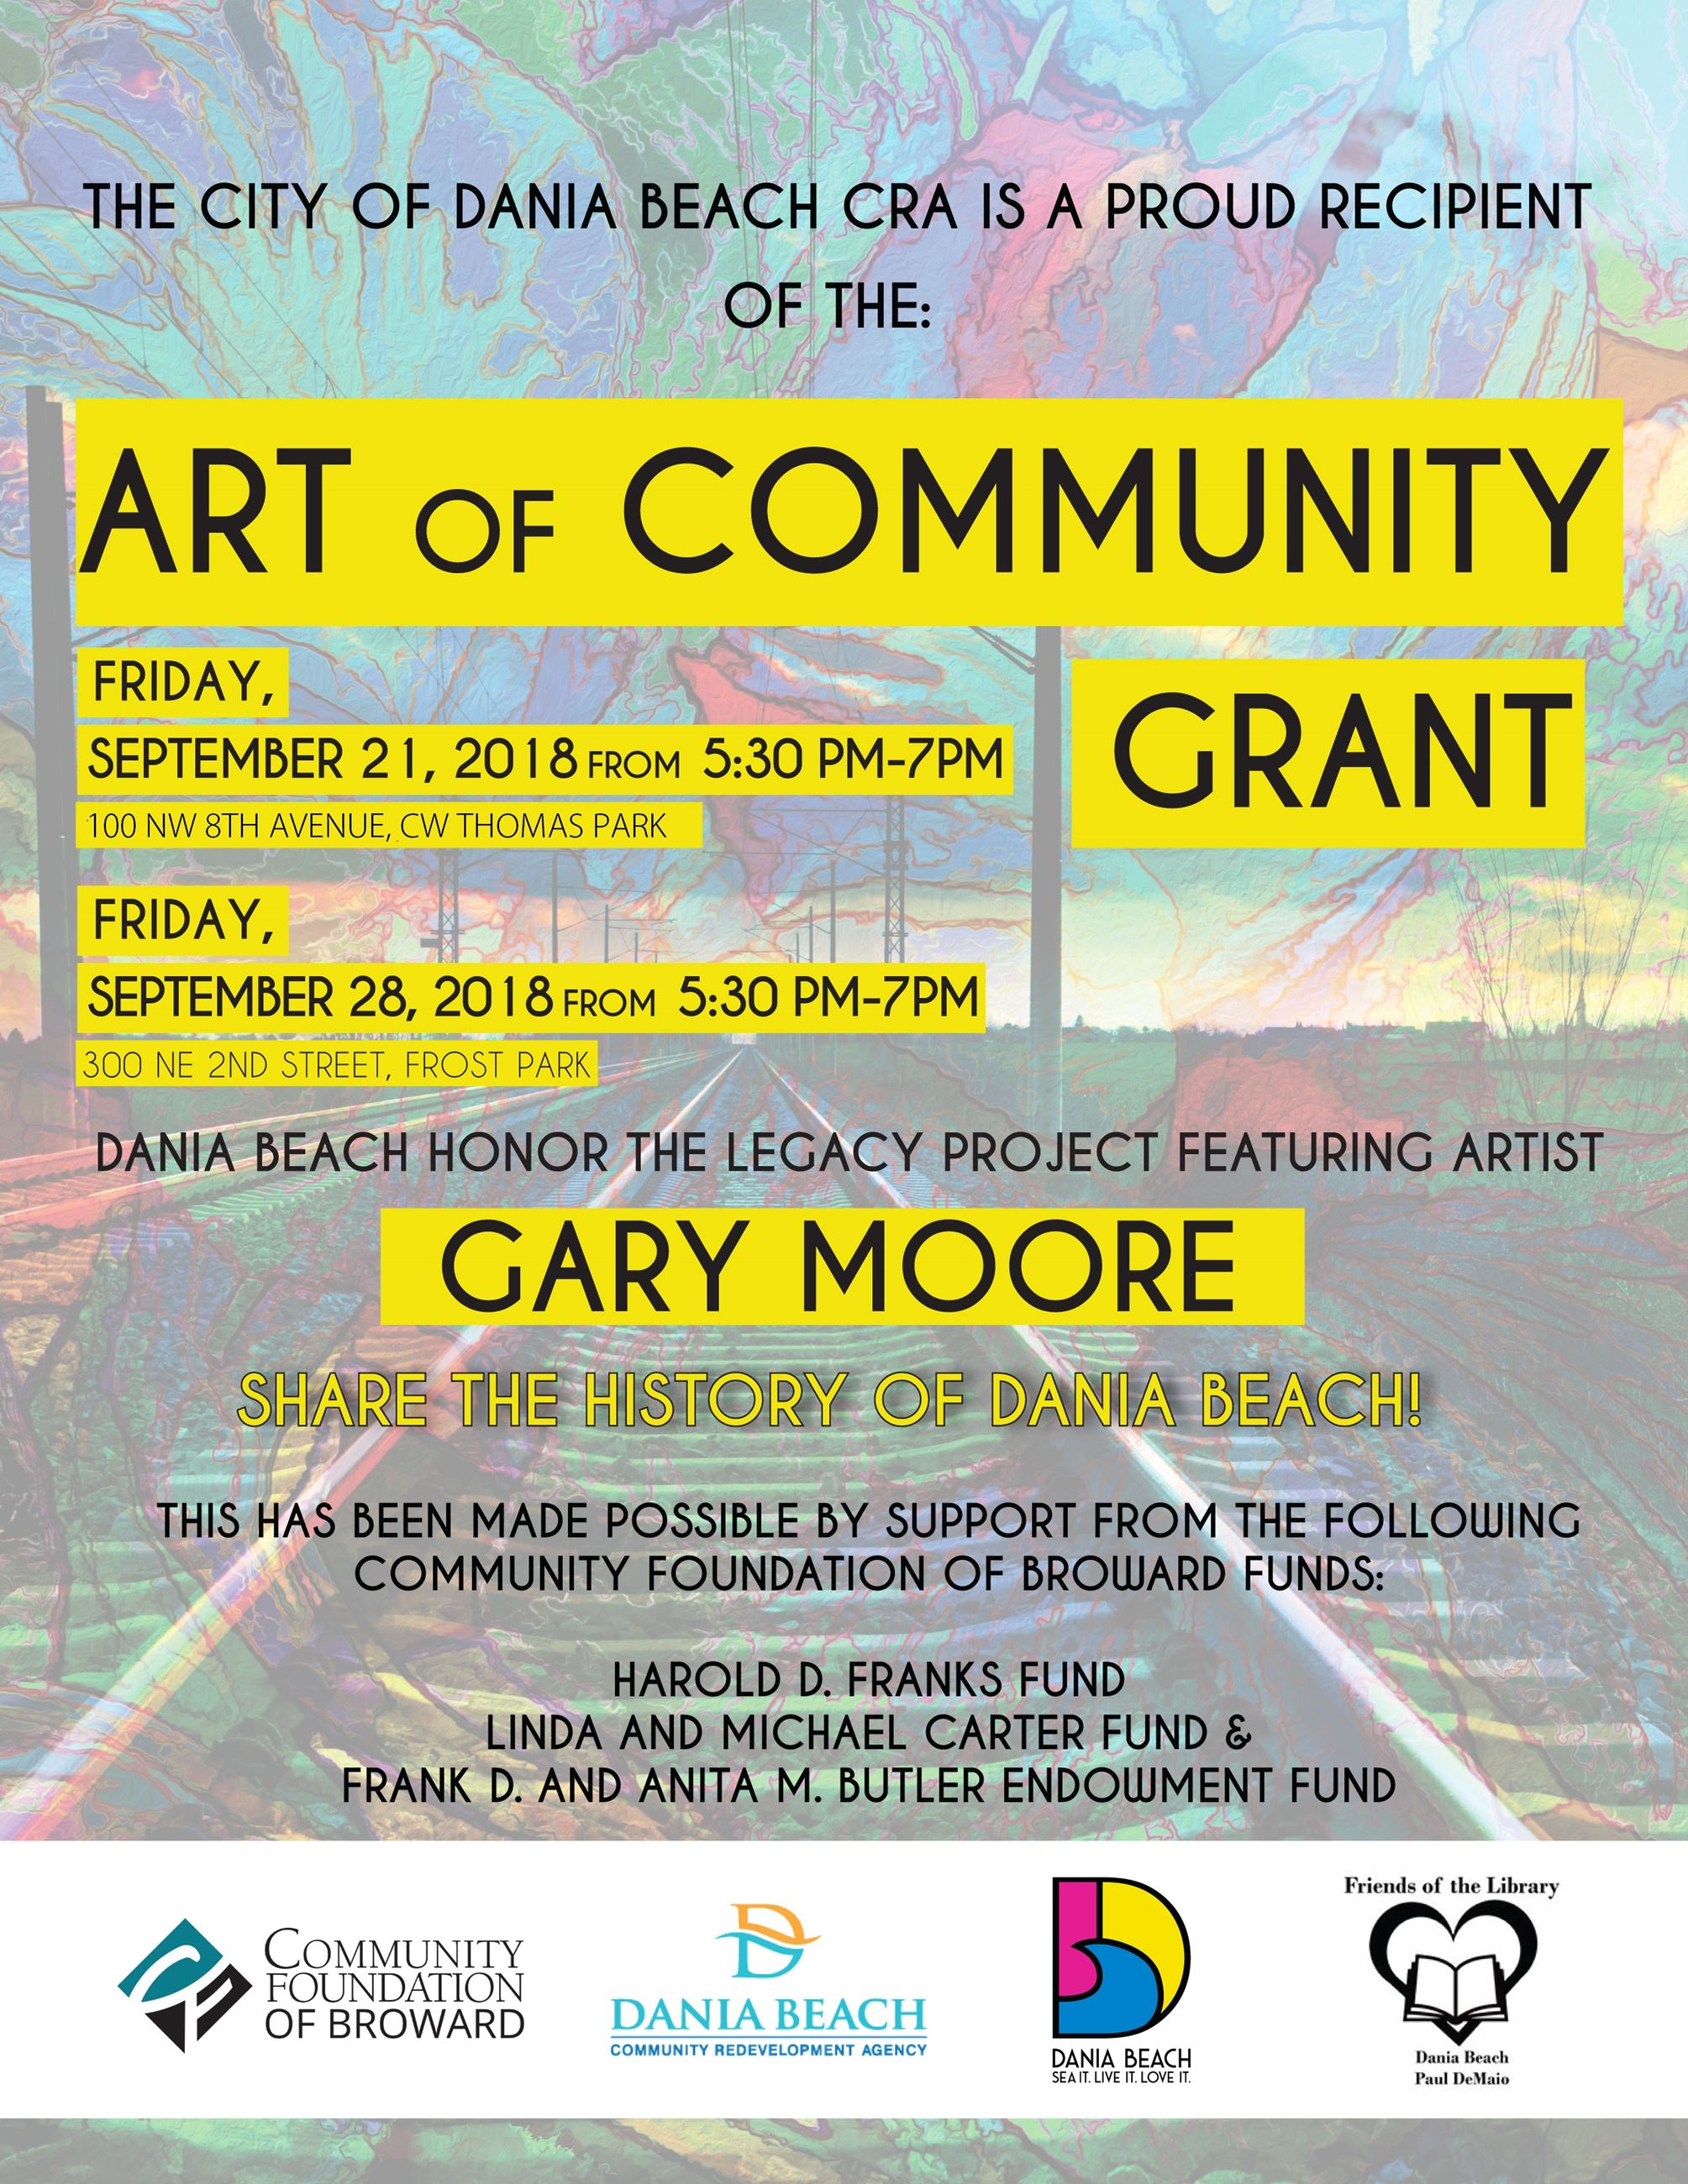 Art of Community Grant 2 Locations copy